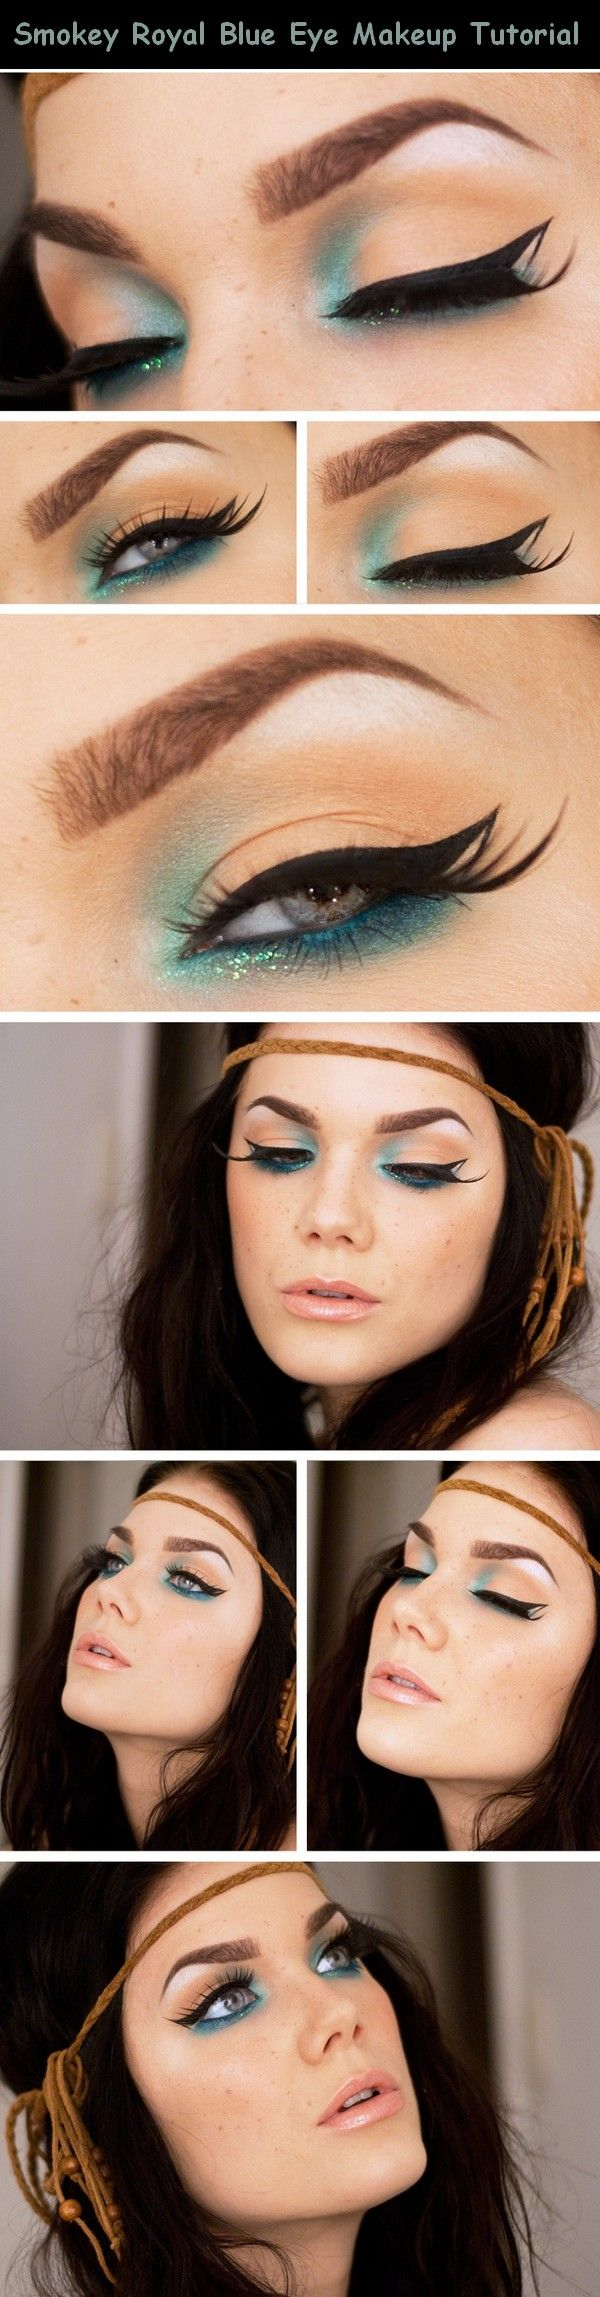 Smokey Royal Blue Eye Makeup Tutorial, so pretty to look at   www.STATEOFCHIC.com